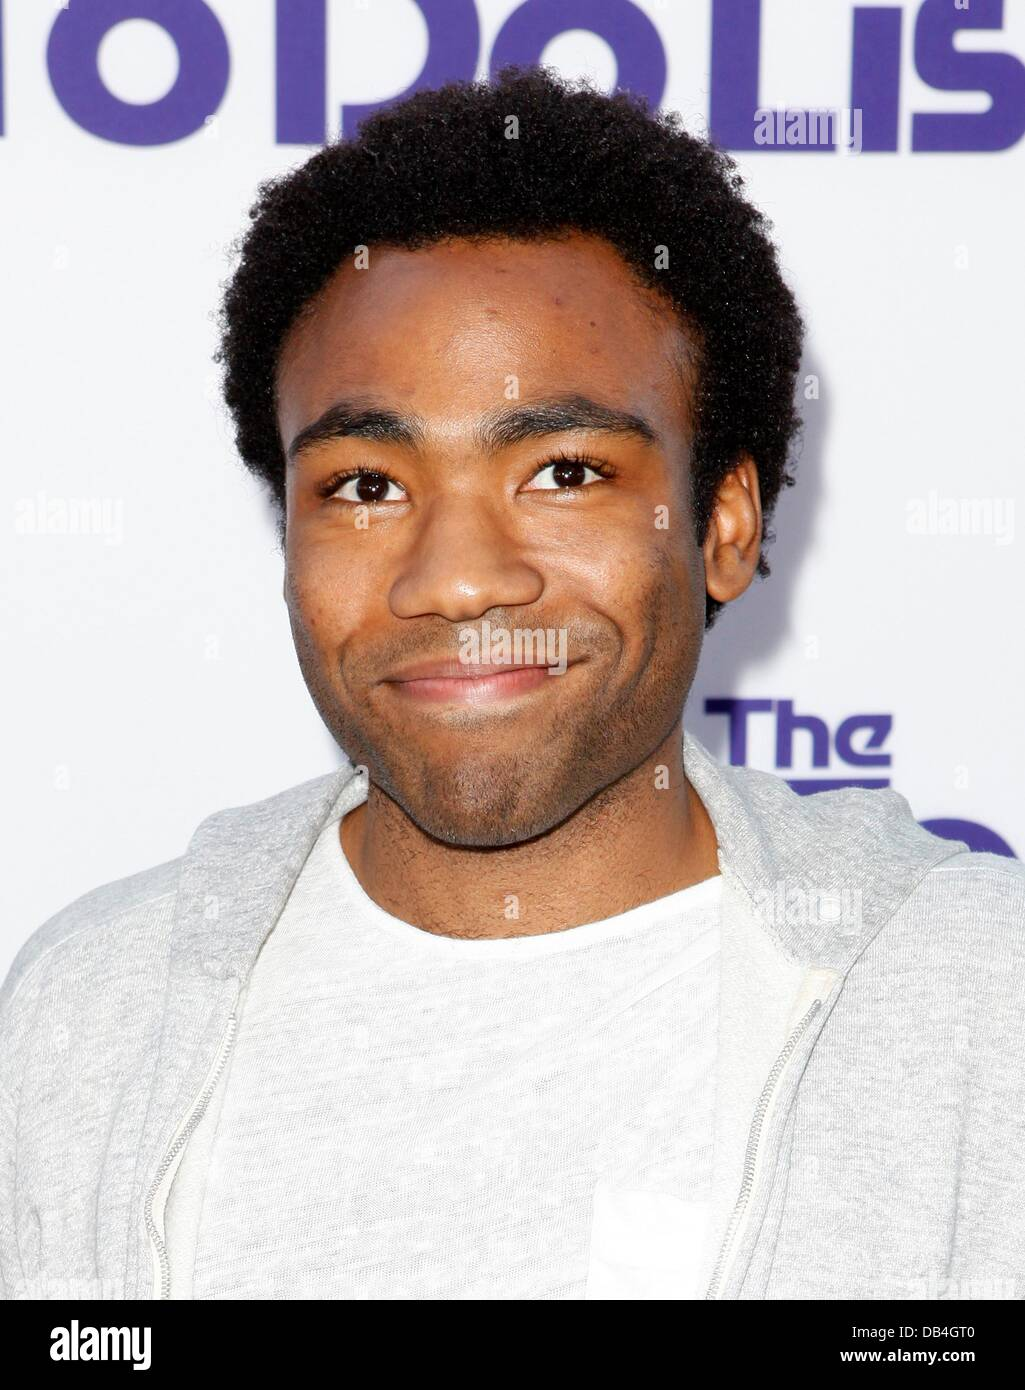 Los Angeles, CA. 23rd July, 2013. Donald Glover at arrivals for THE TO DO LIST Premiere, Regency Bruin Theatre, - Stock Image